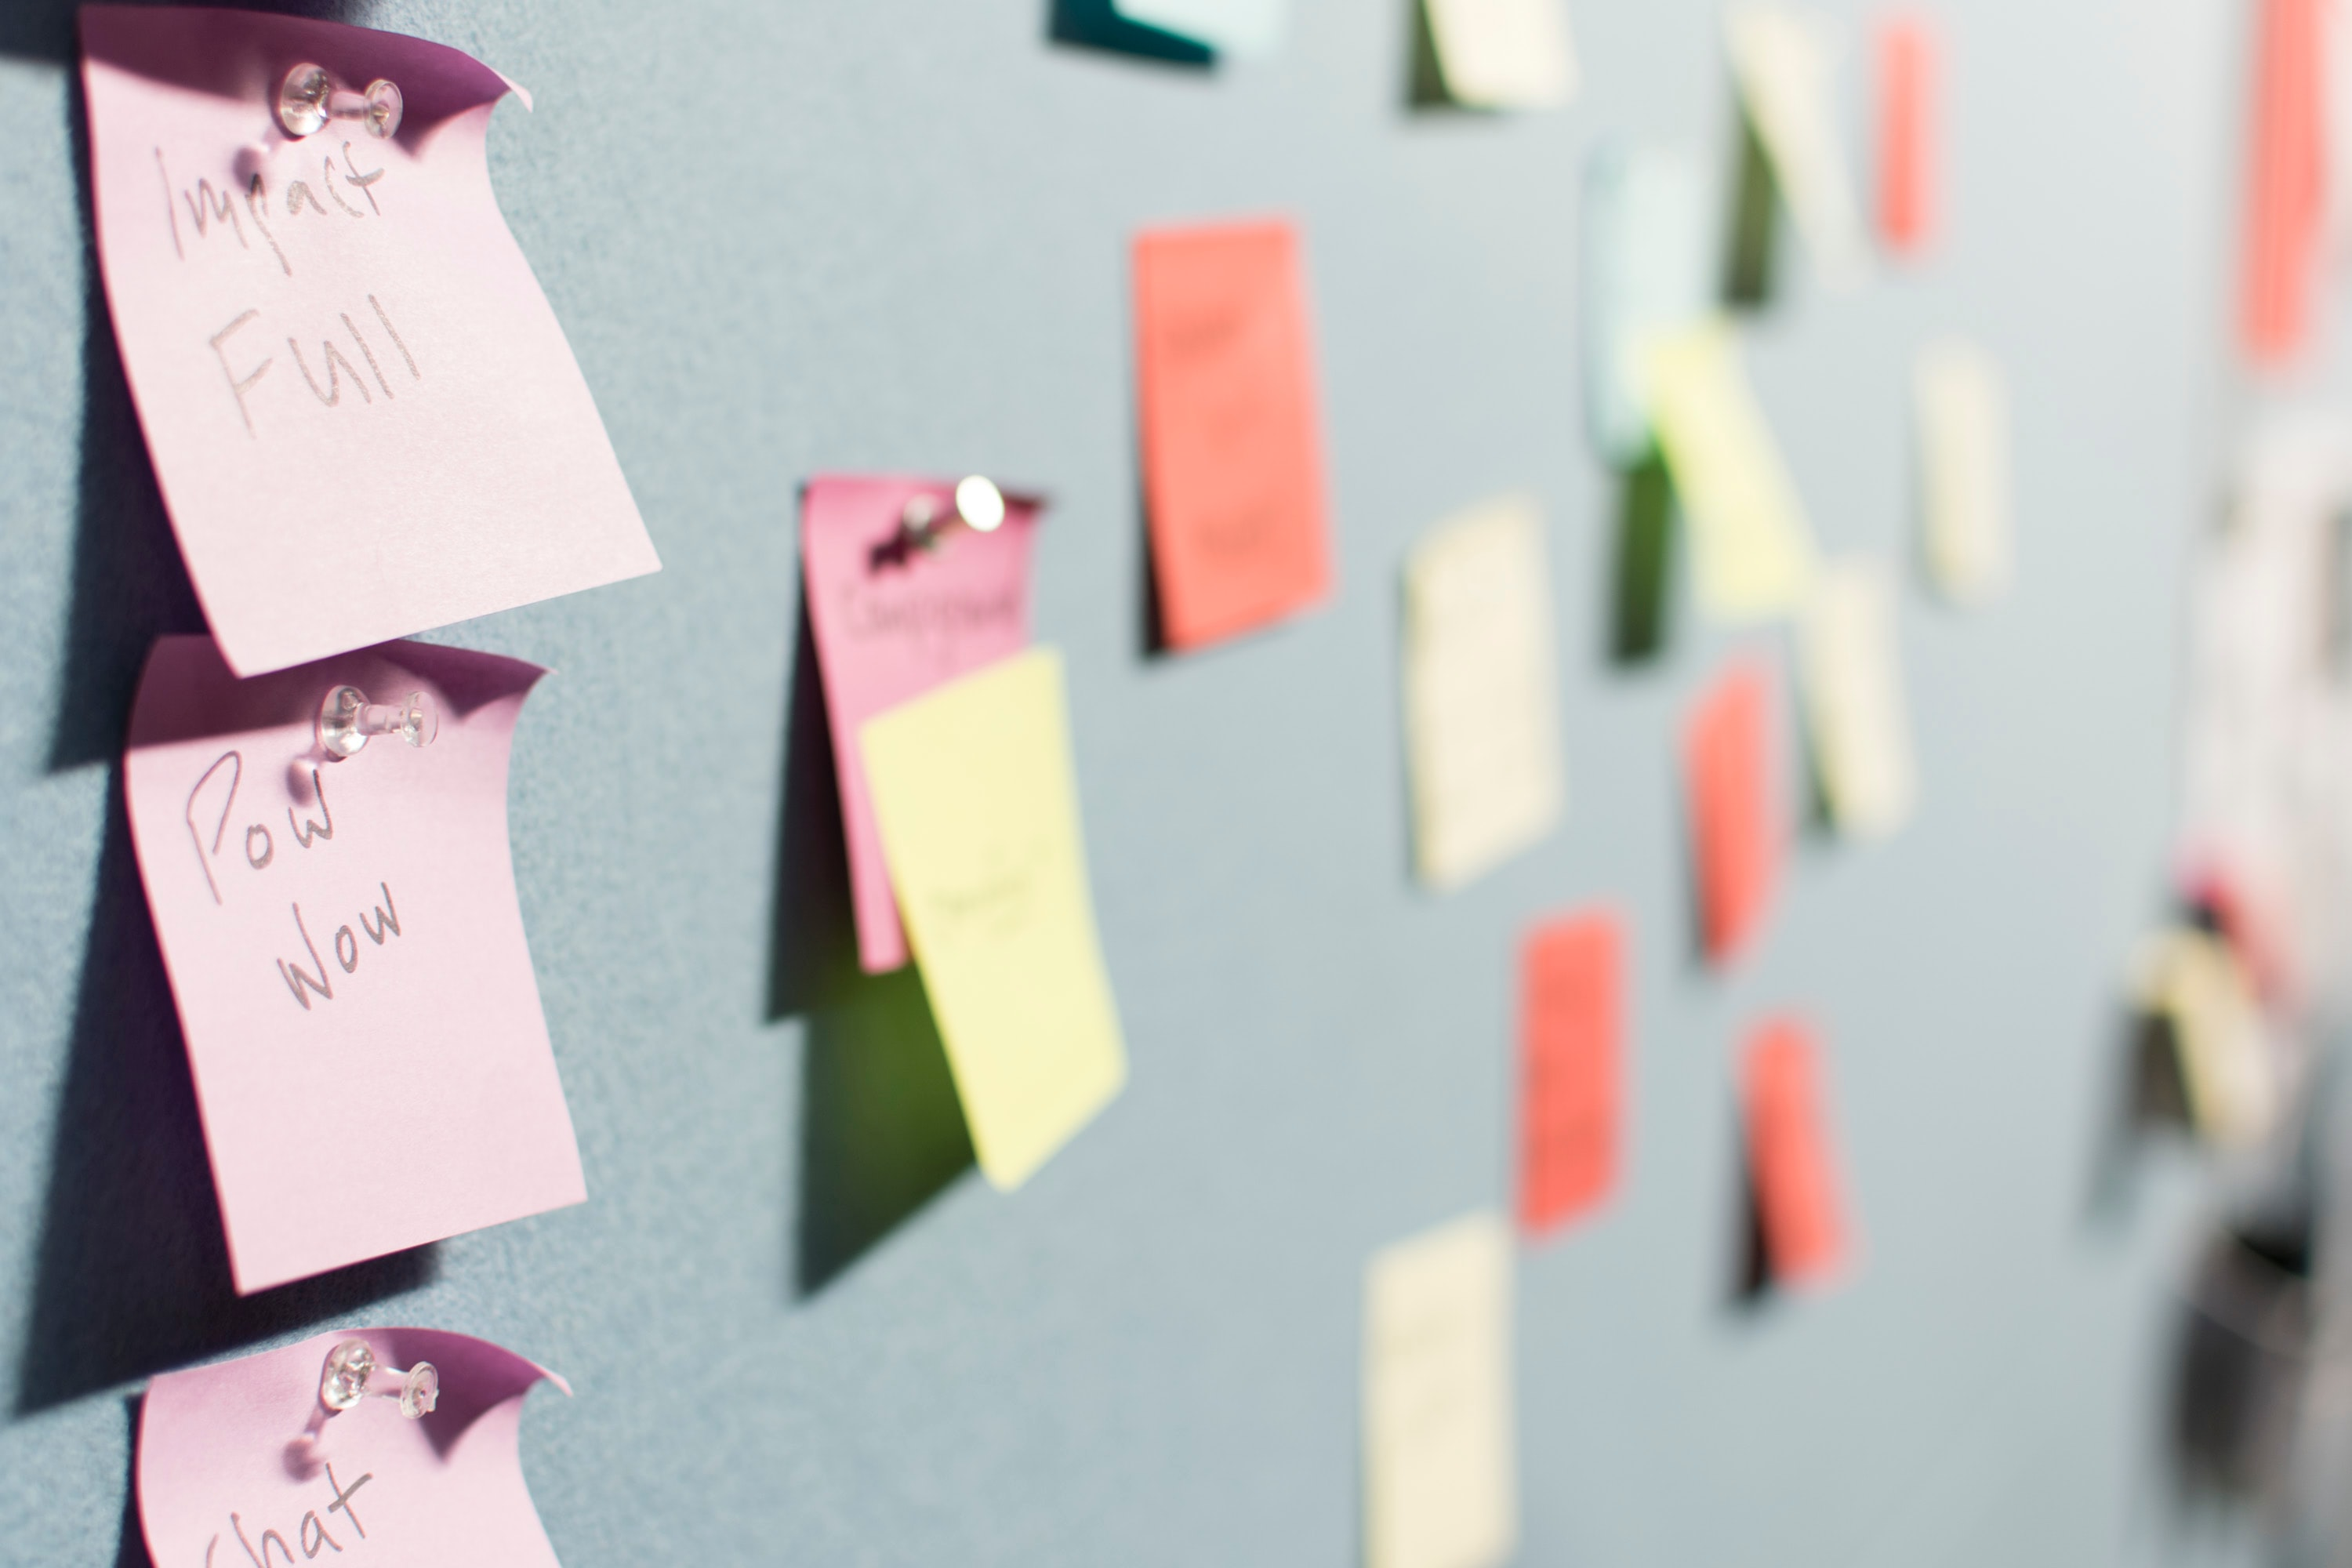 What are the advantages of agile methodology?